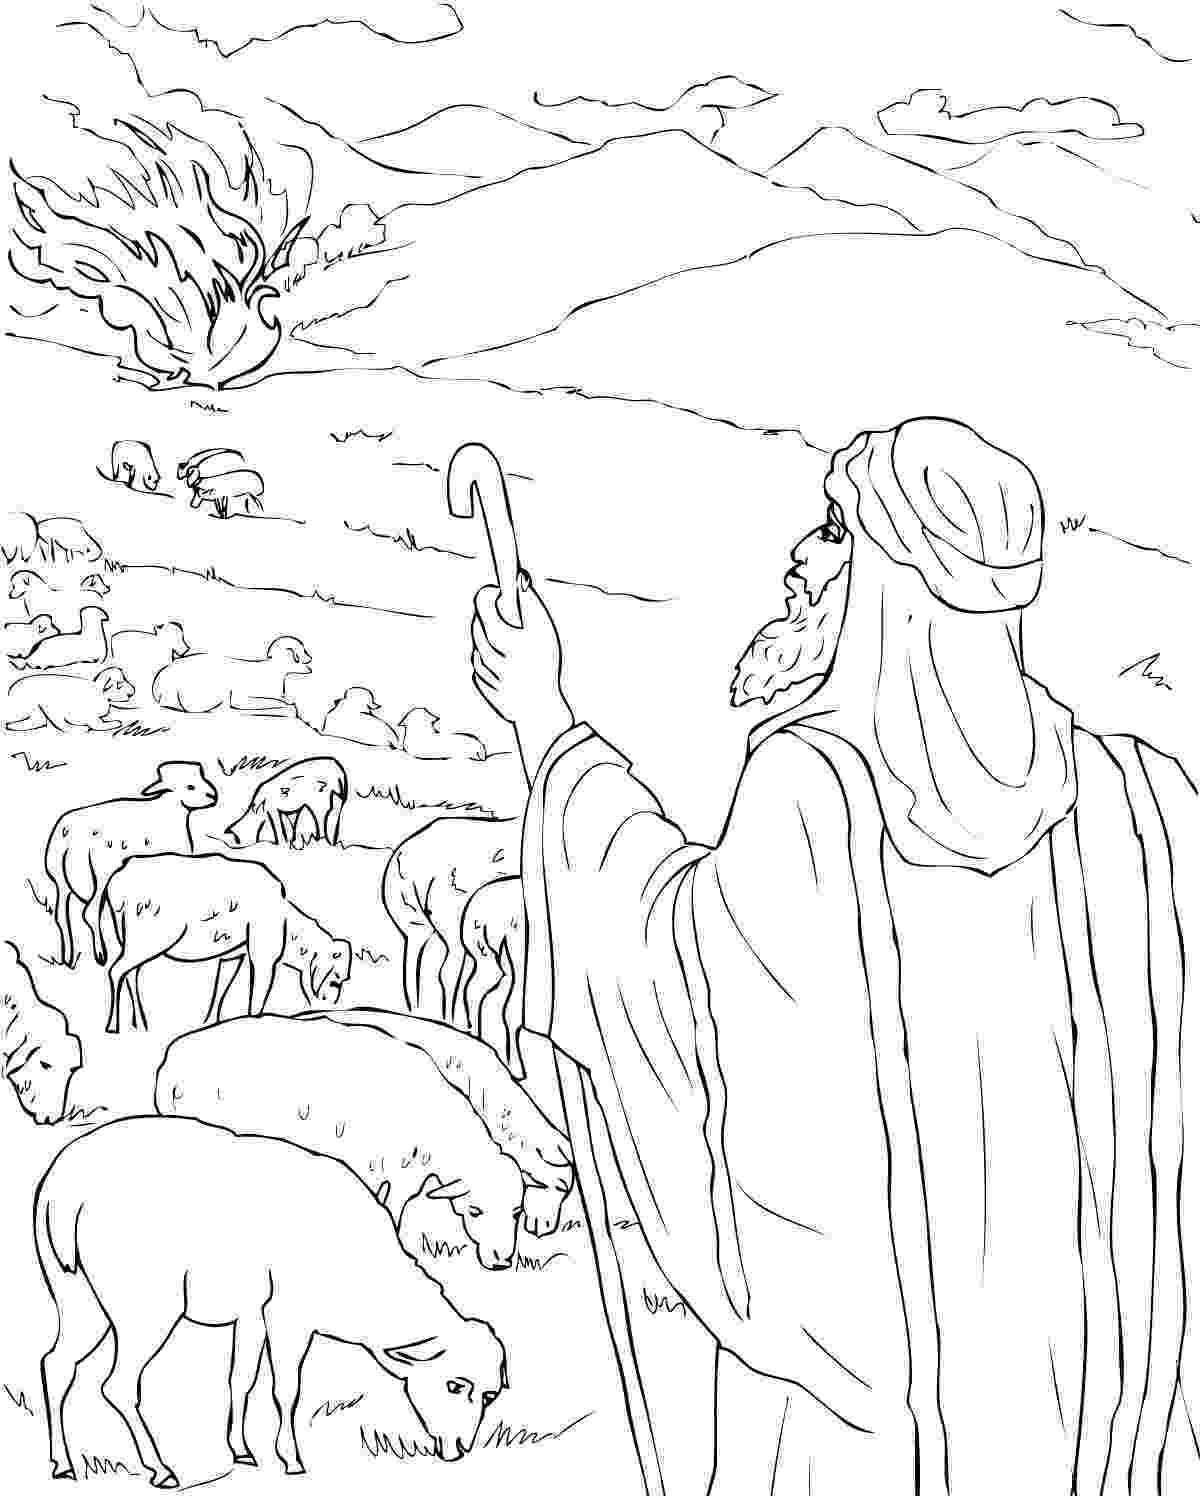 moses coloring pages moses the burning bush coloring page free printable coloring pages moses